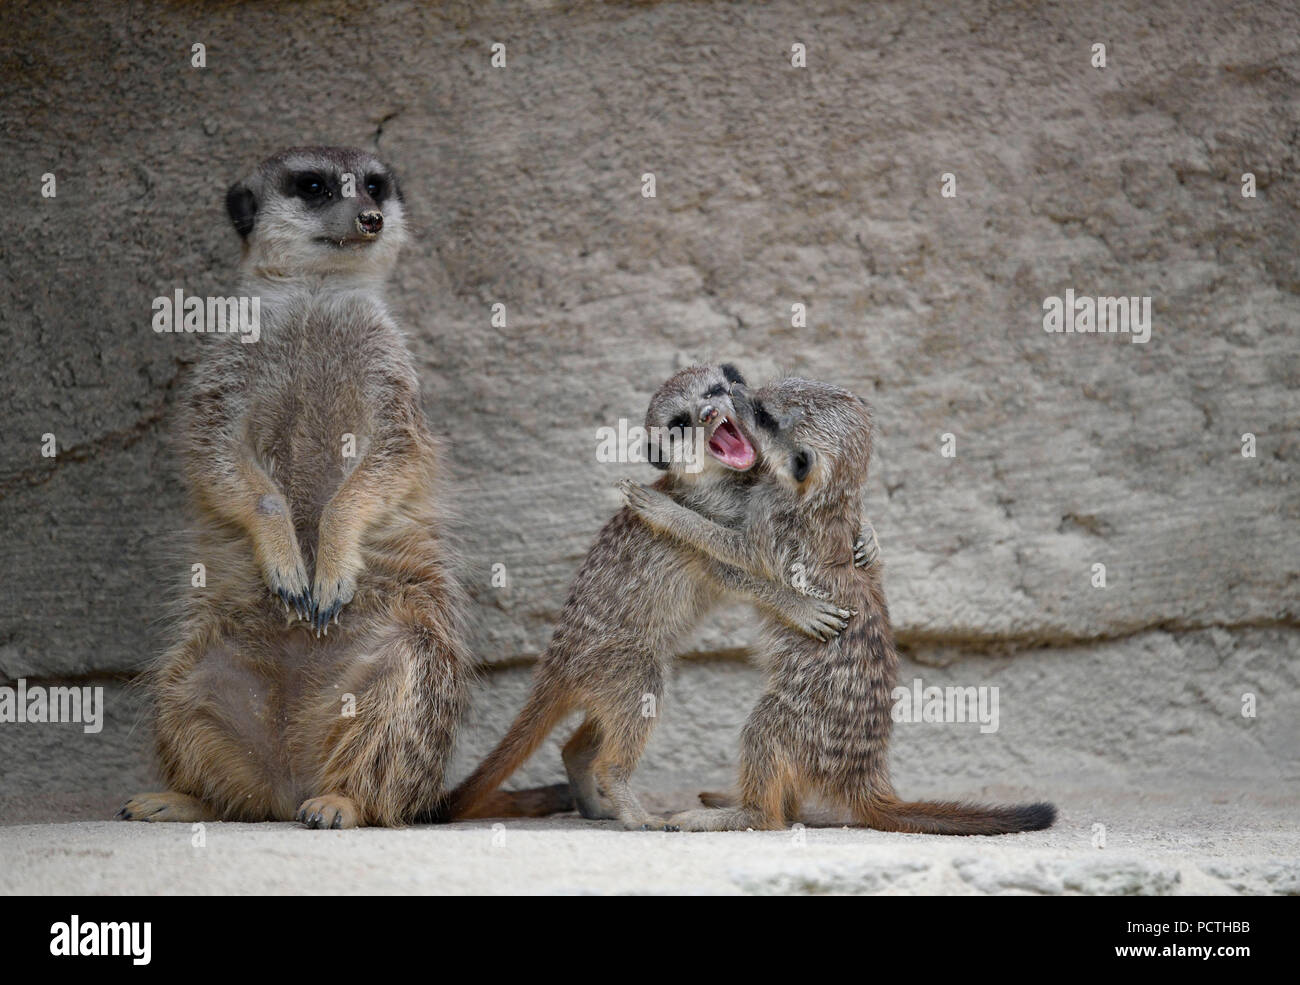 Meerkat, Suricata suricatta, pups, 6 weeks old, playing along adult, captive - Stock Image